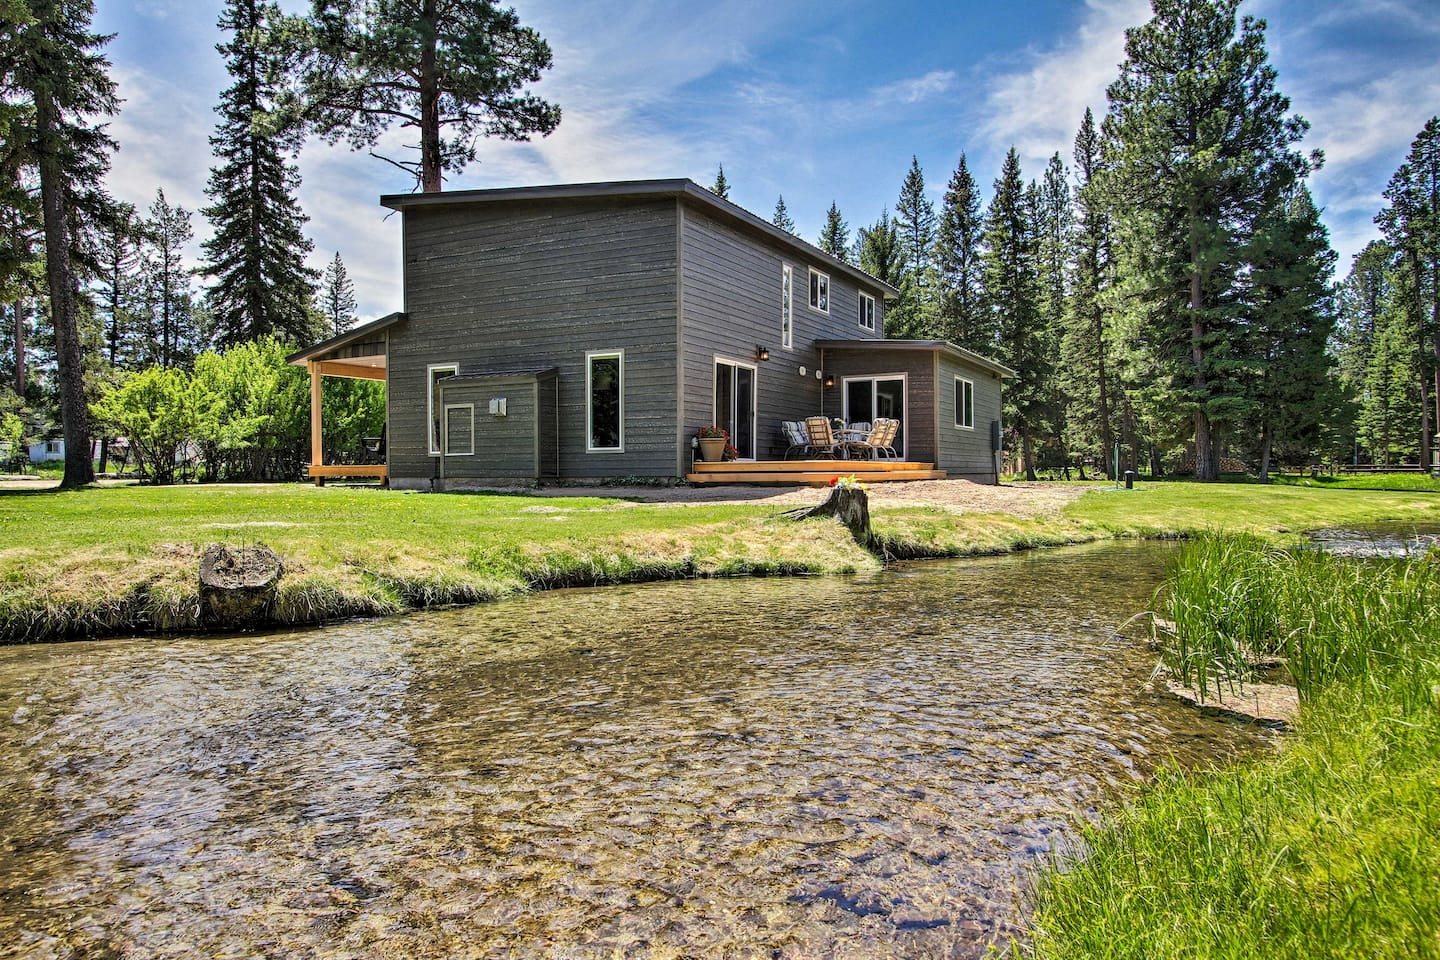 Photo of a sophisticated fishing getaway Airbnb located in Lincoln, Montana.